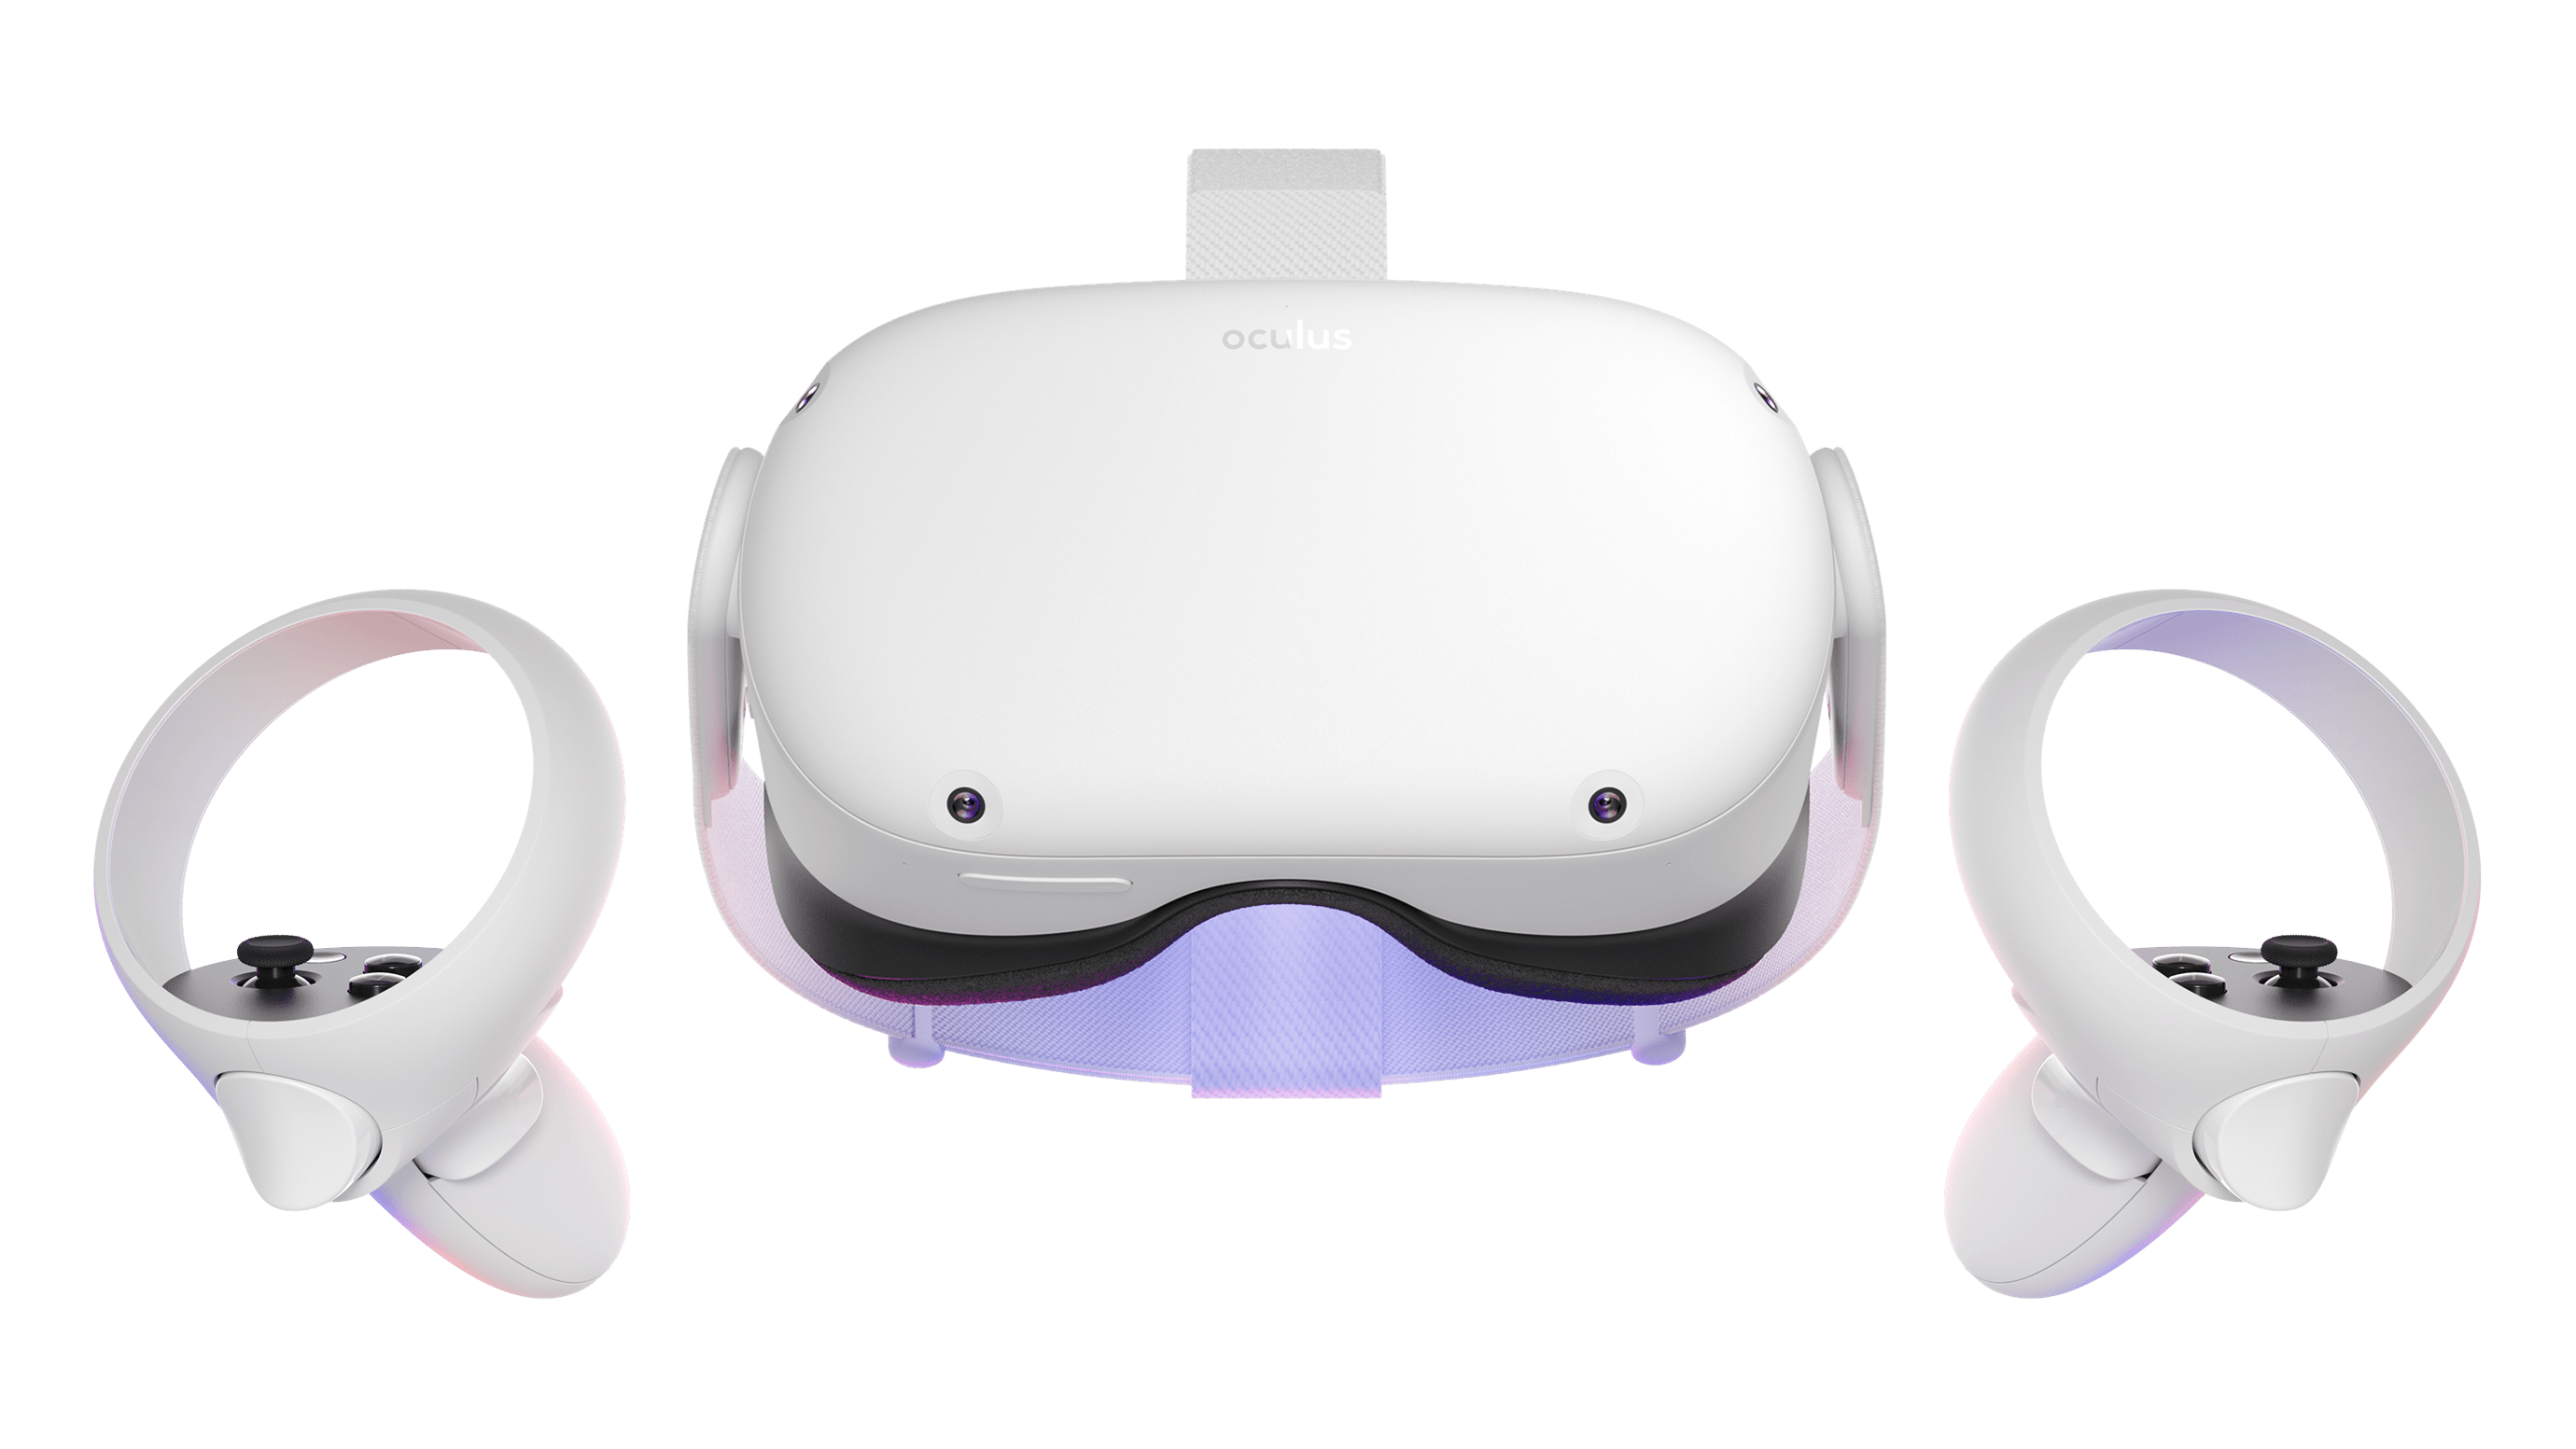 Oculus Quest 2 for The Wild